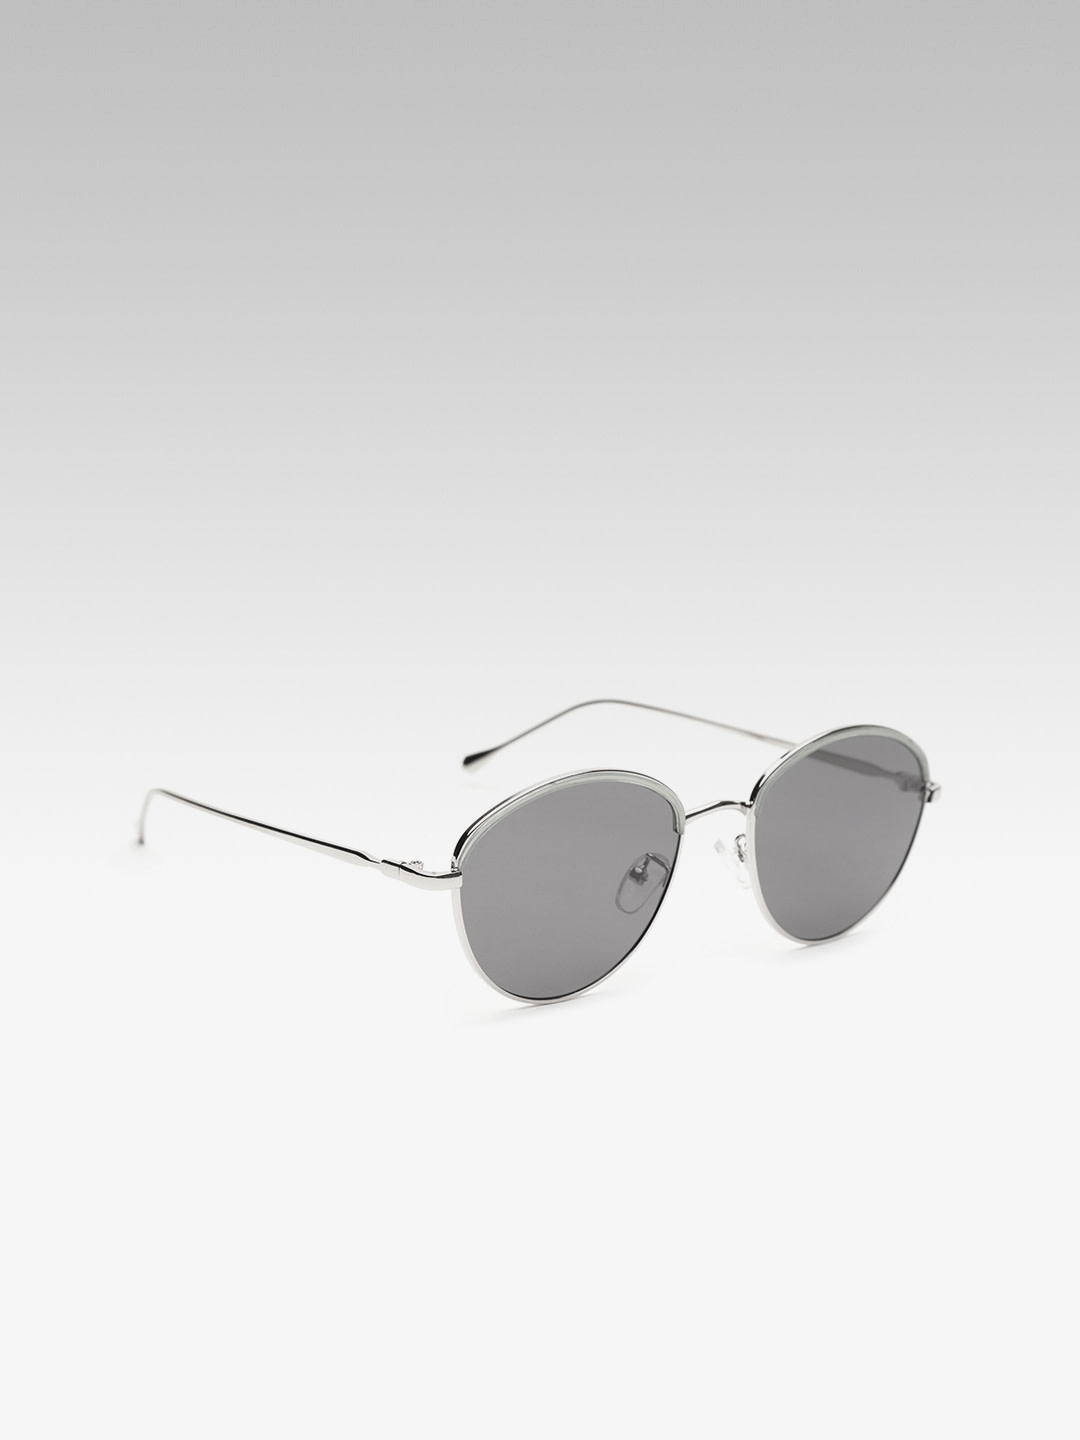 Sunglasses-The Timeless Classic Sunglasses2